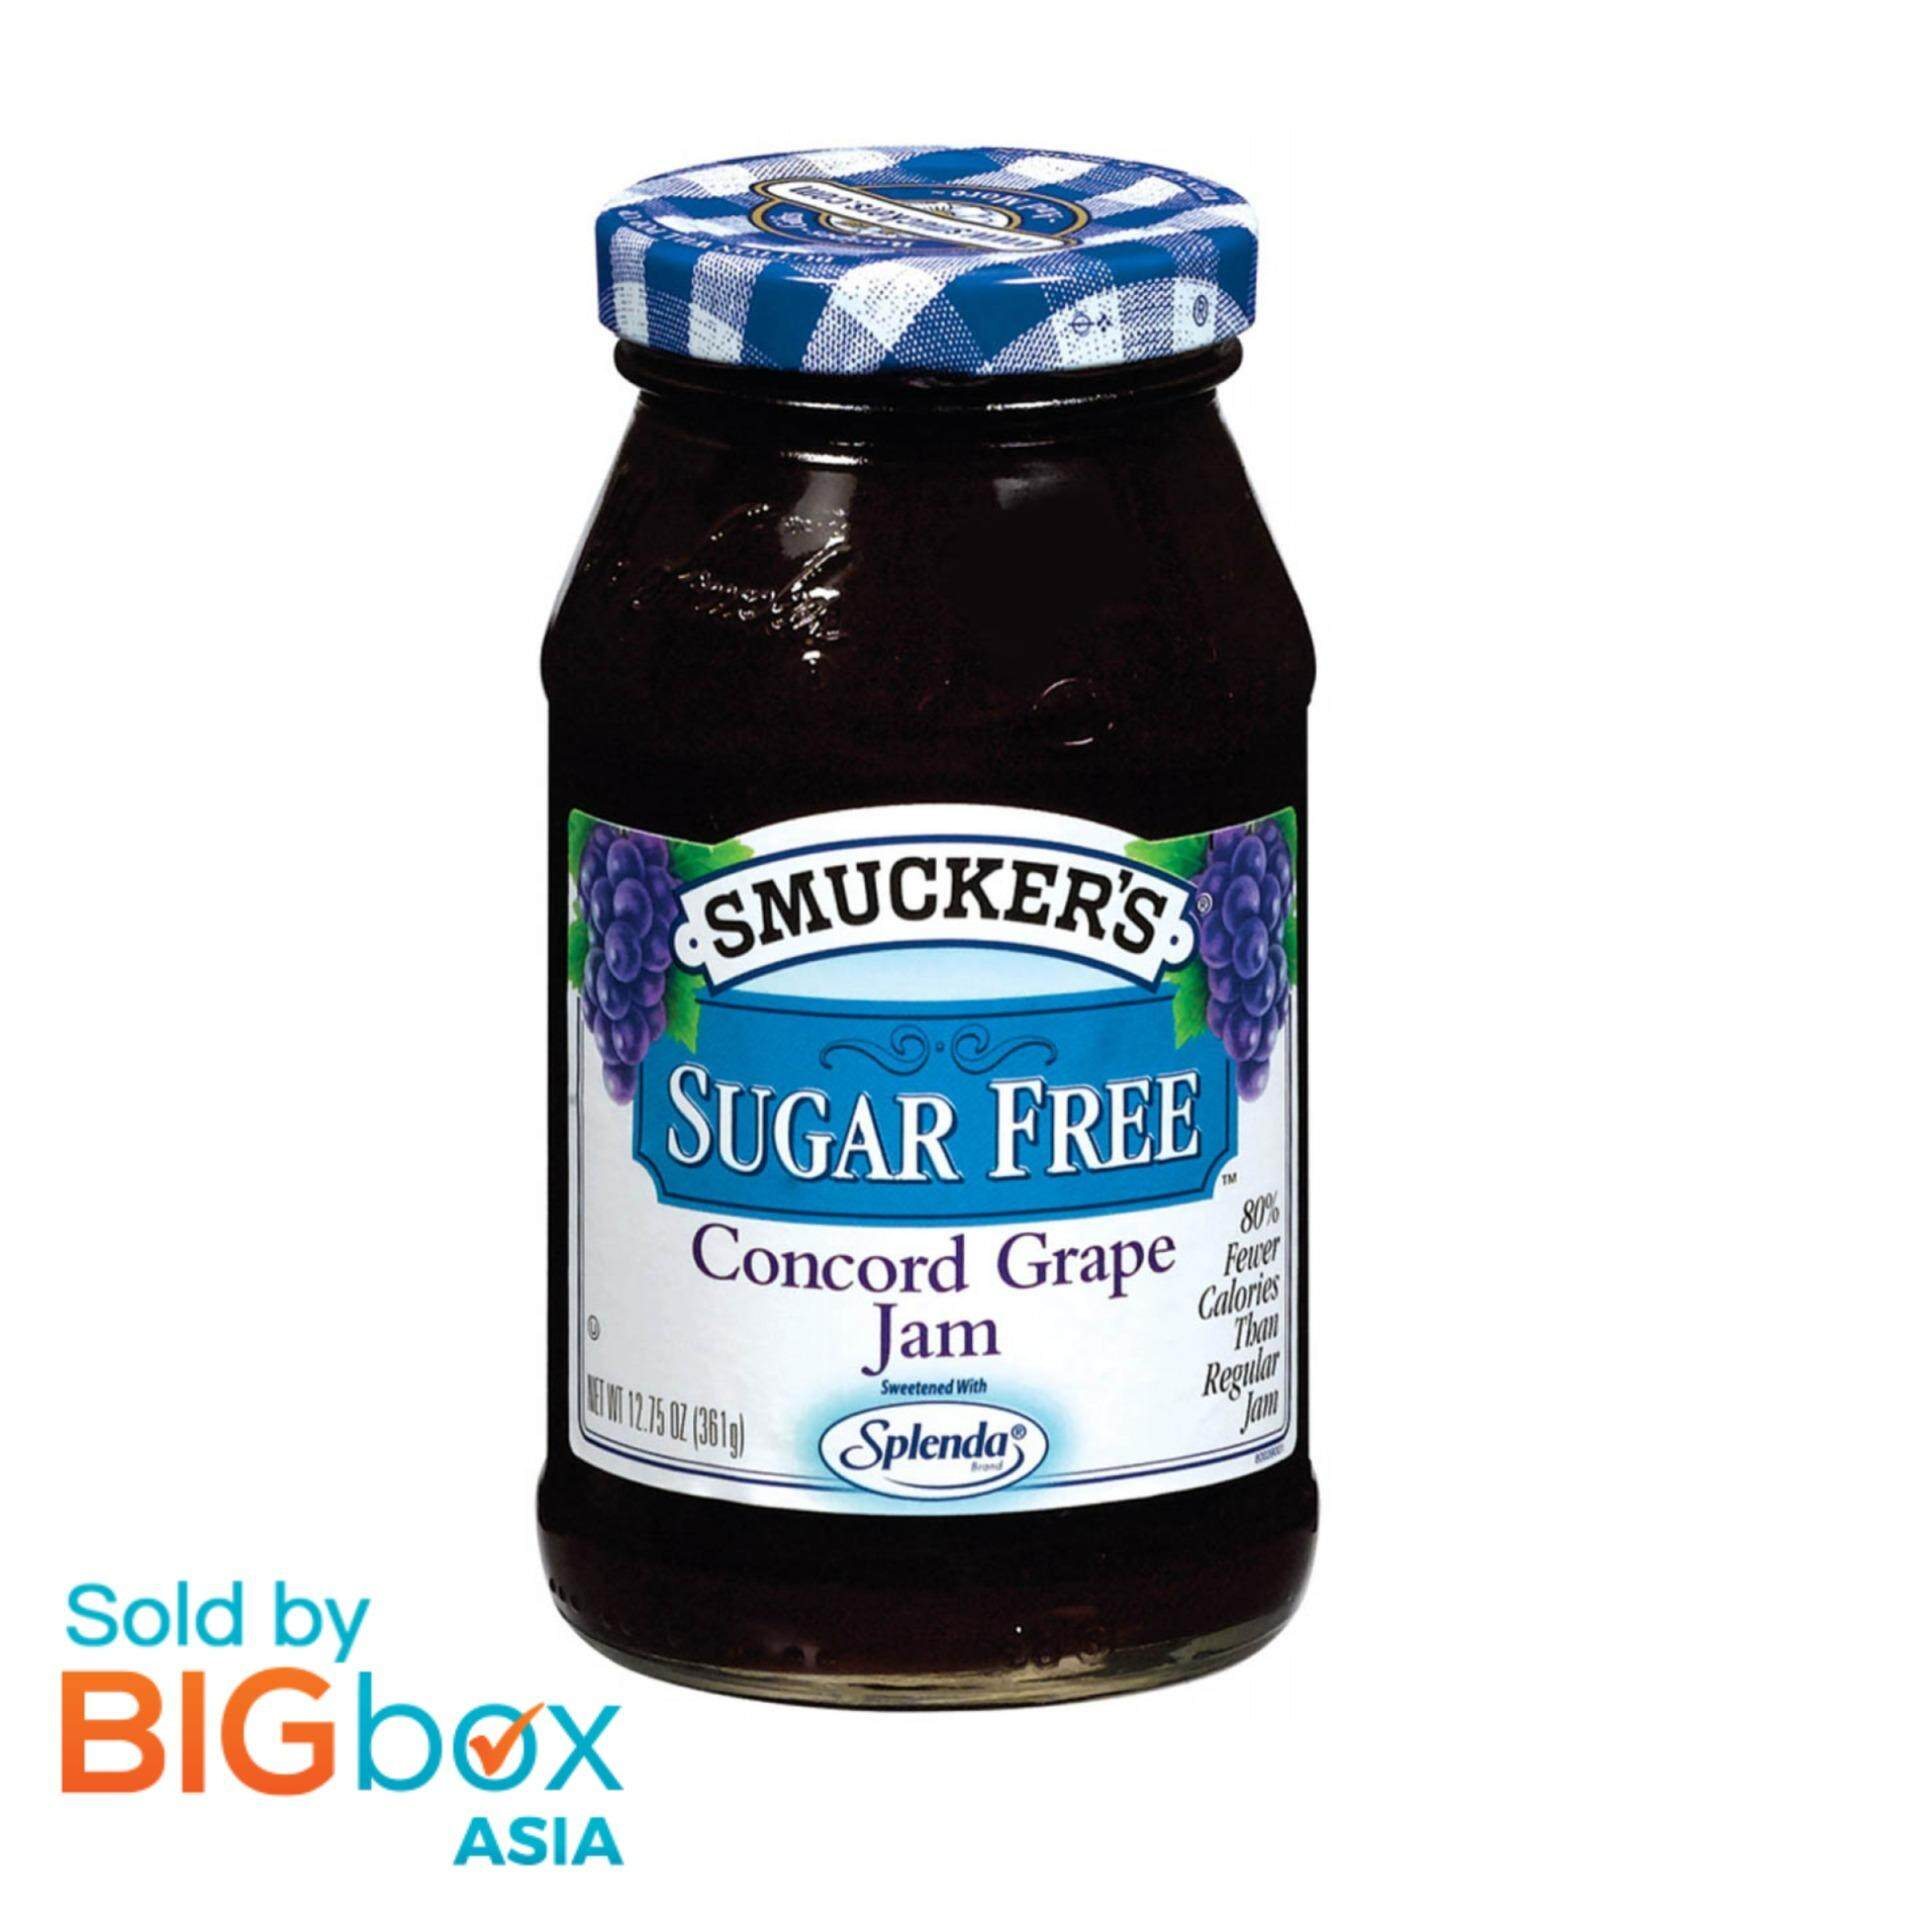 Smuckers Concord Grape Jam (sugar Free) 361g – Usa By Bigbox Asia.